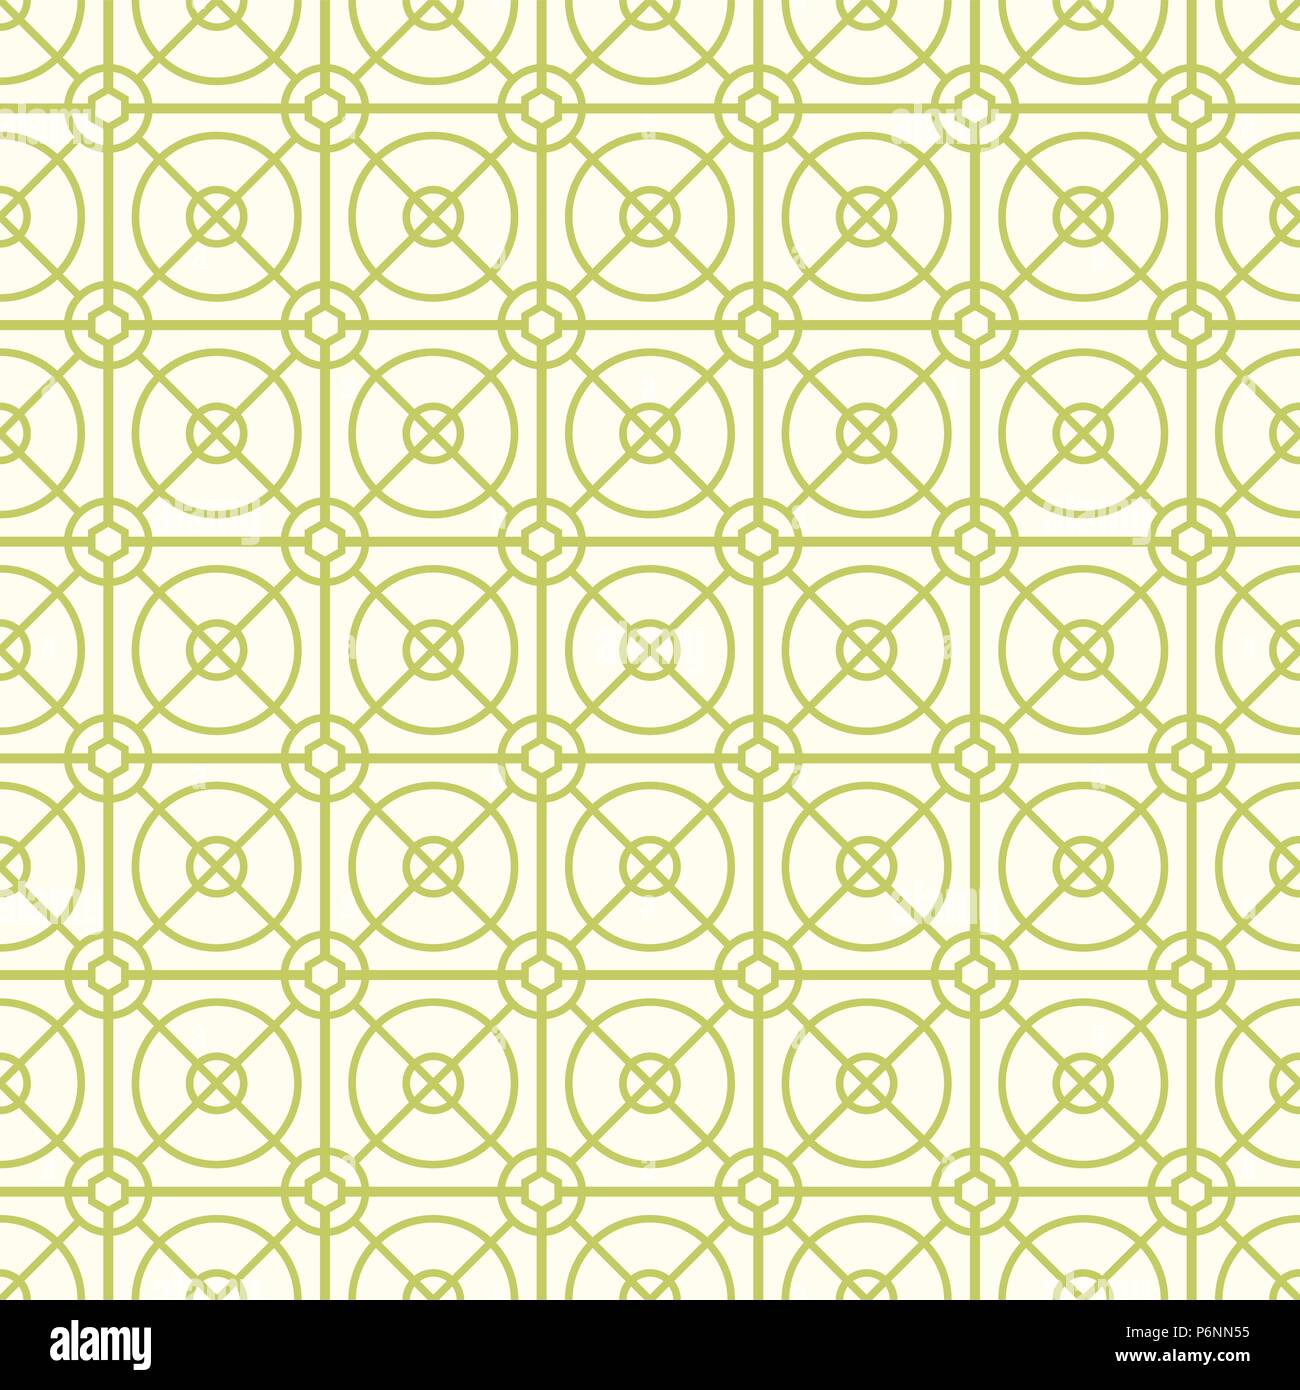 Green Abstract circle and square and hexagon seamless pattern on pastel background. Modern line and circle pattern for graphic design. - Stock Vector